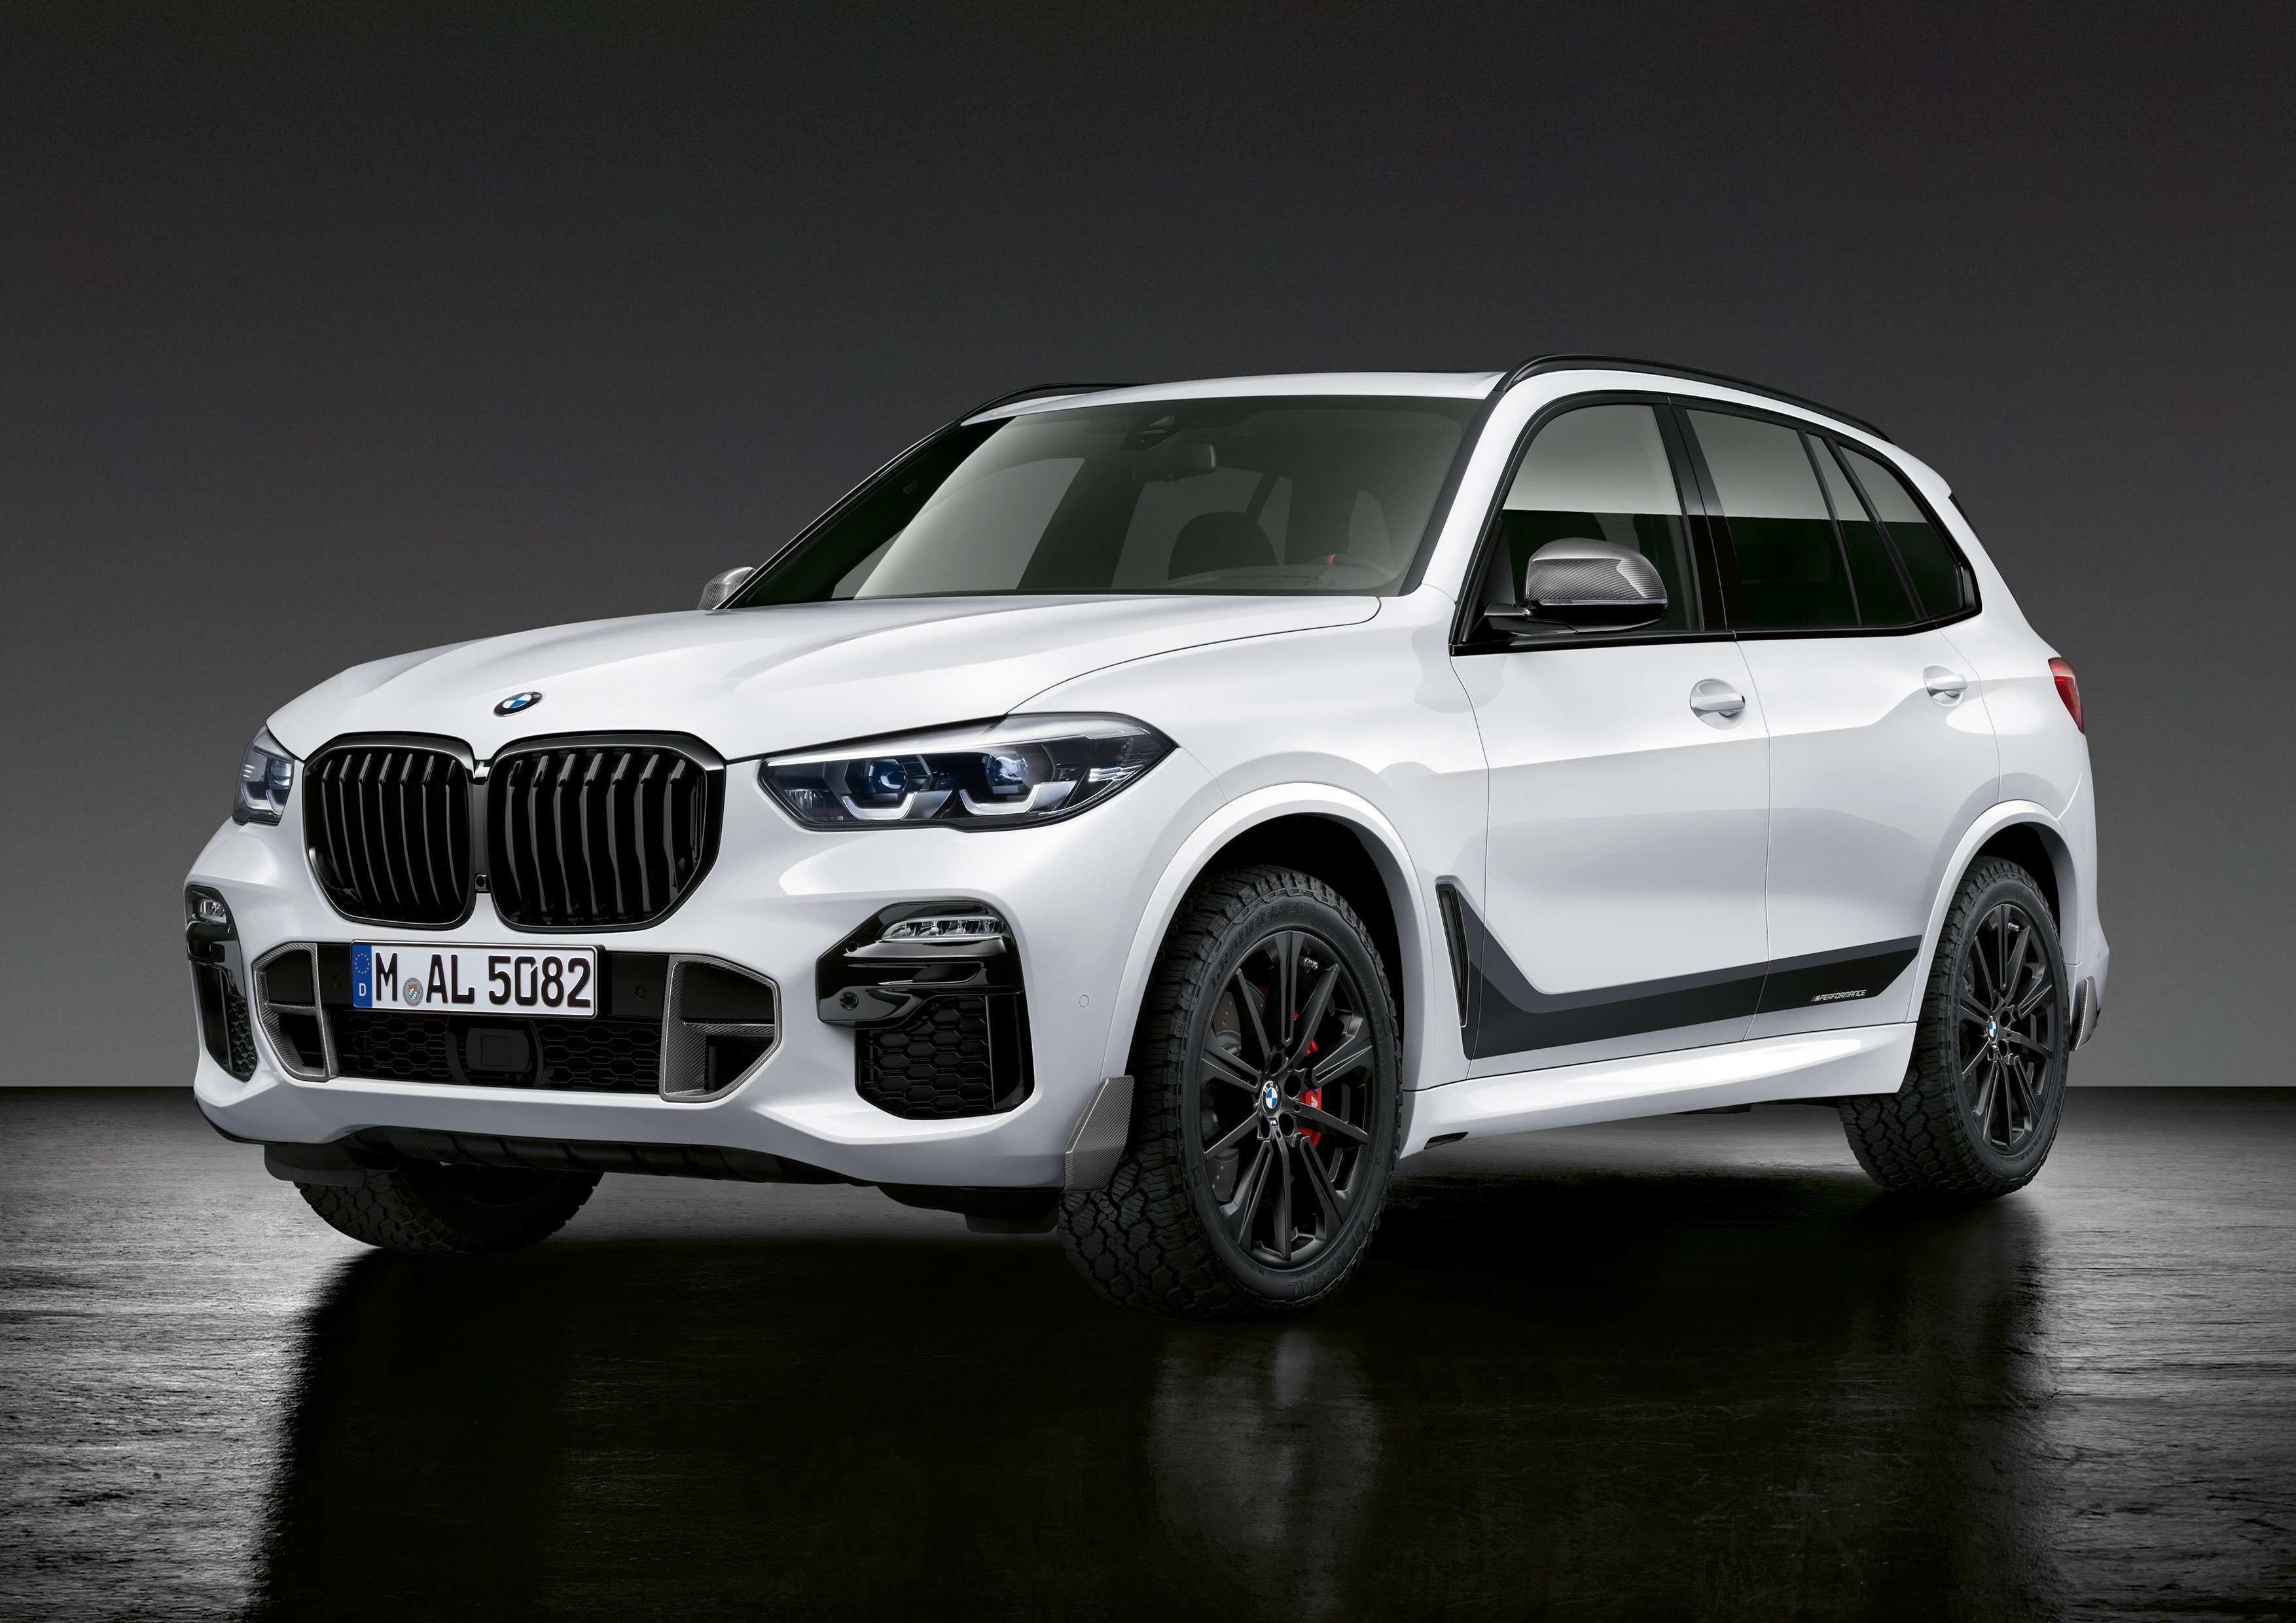 41 All New Review Of 2019 Bmw X5 Performance Specs for Review Of 2019 Bmw X5 Performance